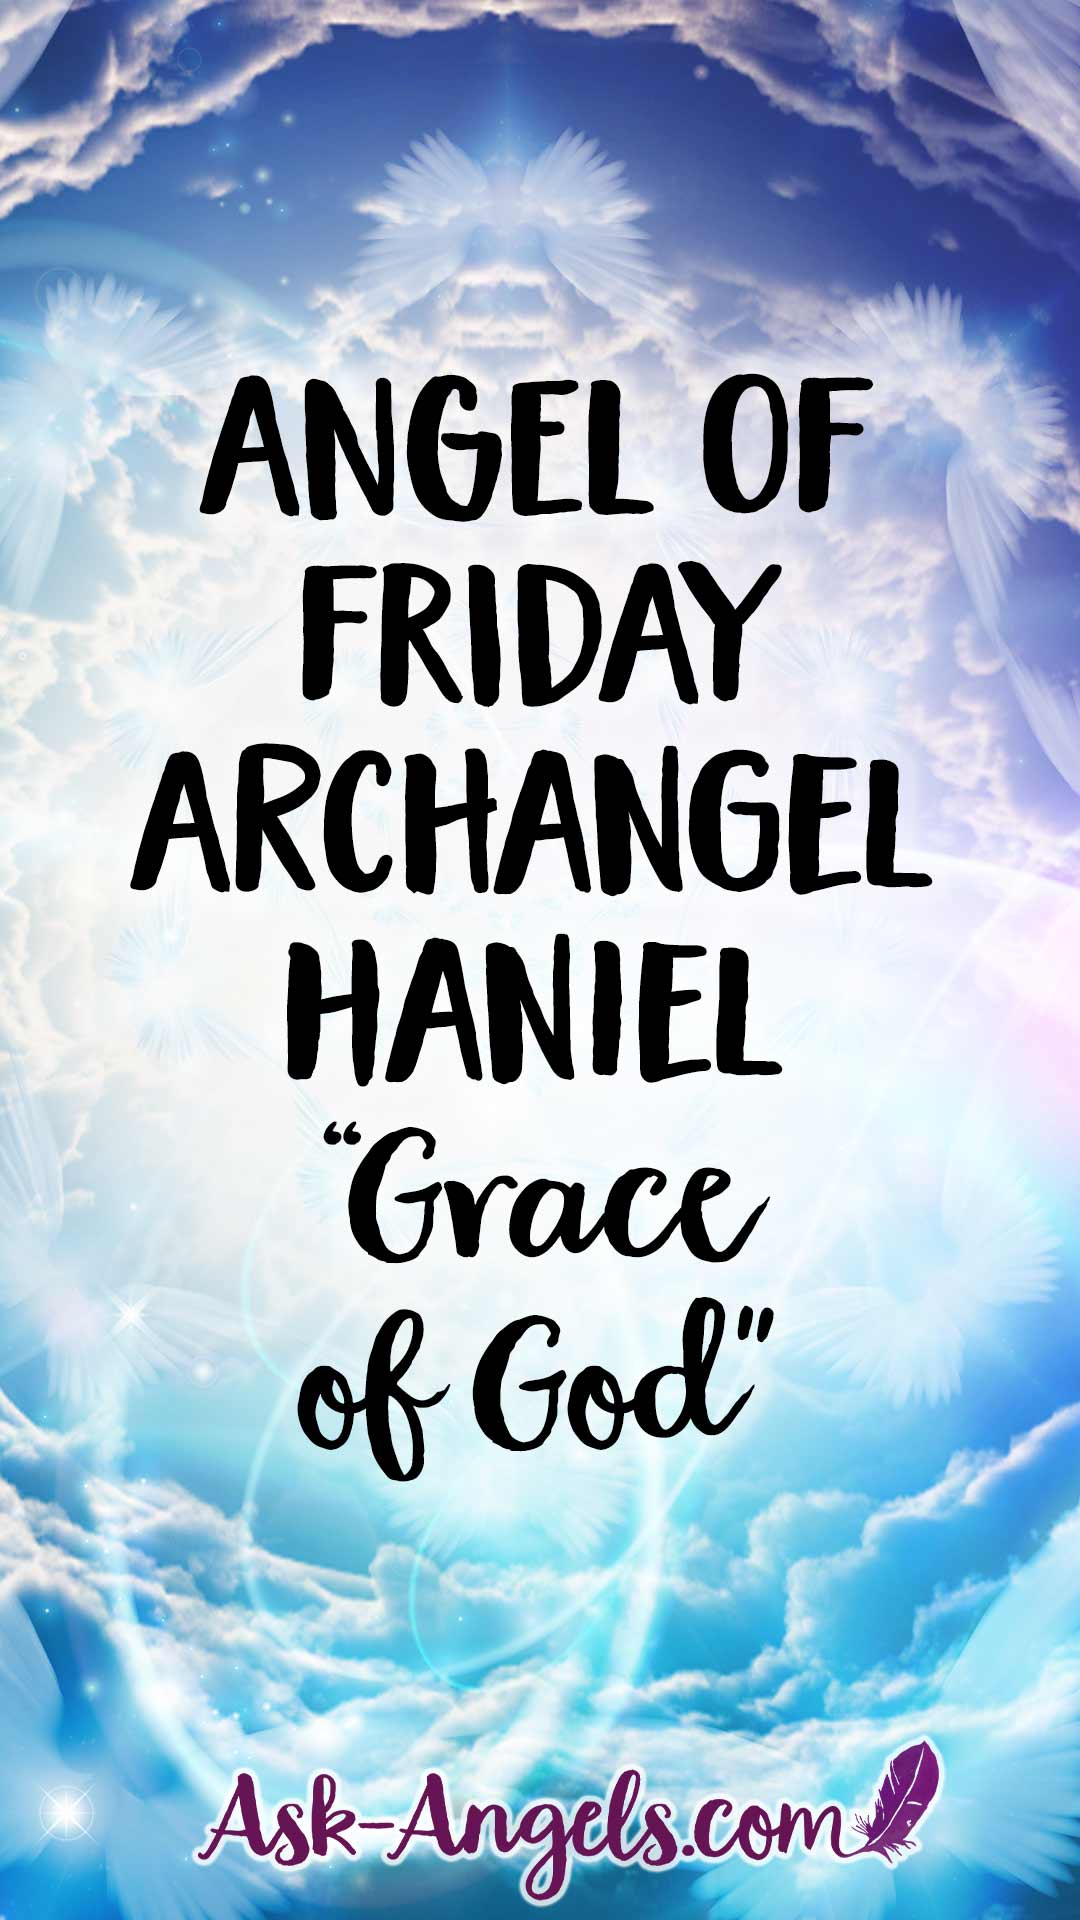 Archangel of Friday: Archangel Anael or Archangel Haniel- Haniel means Grace of God